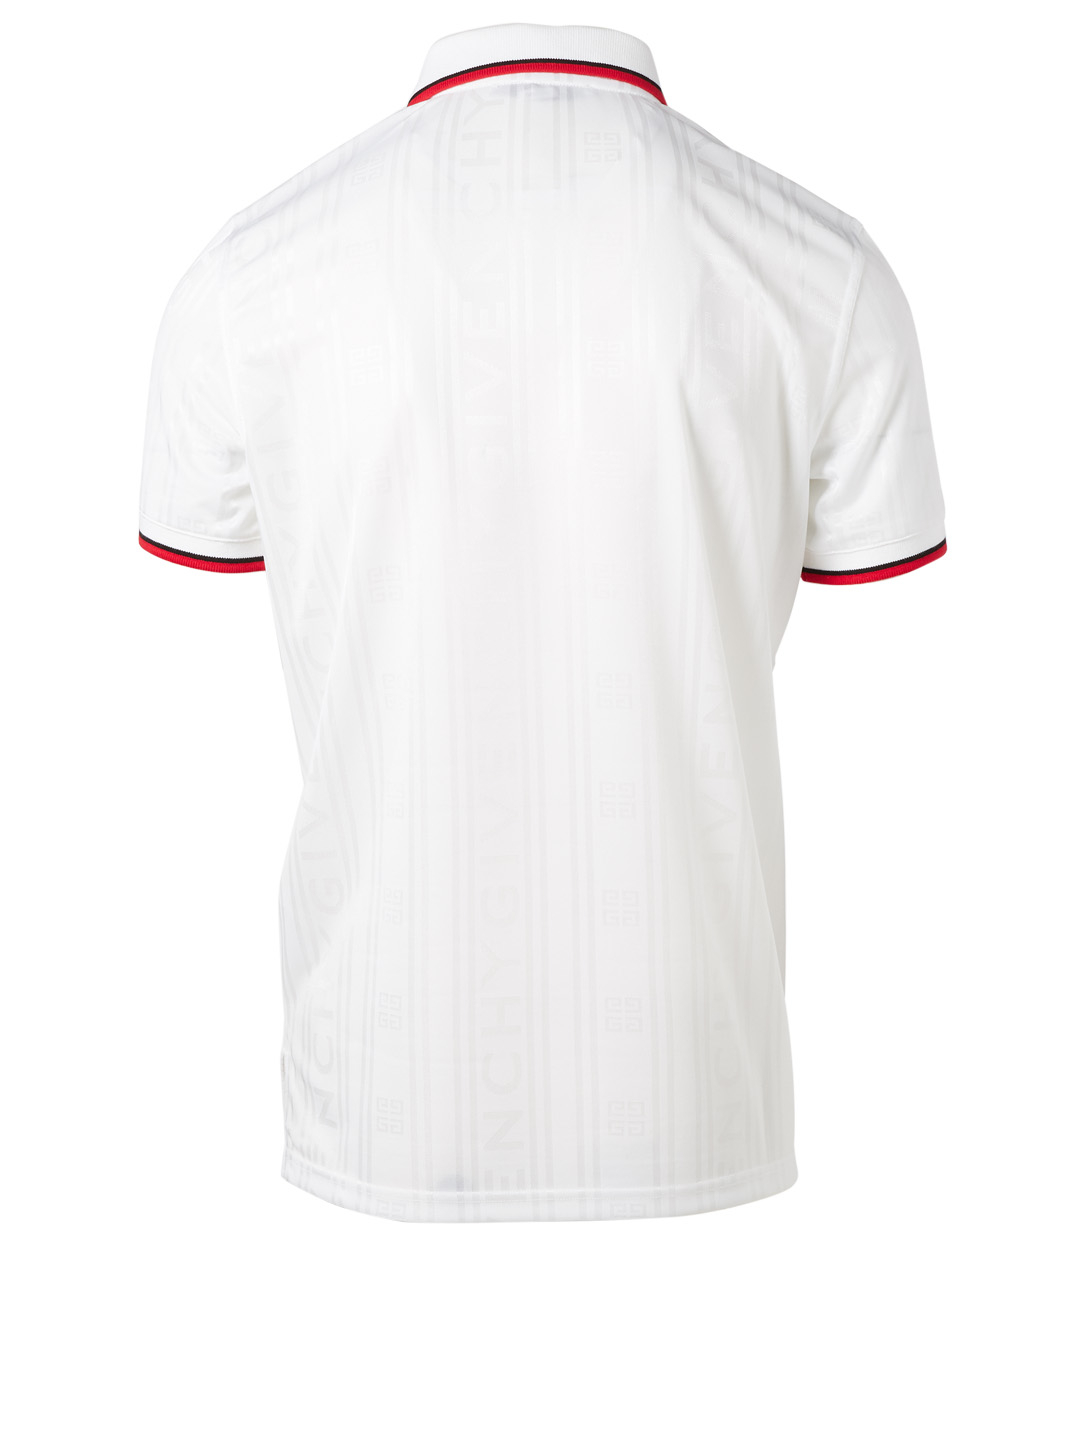 GIVENCHY Short Sleeve Polo Shirt Men's White